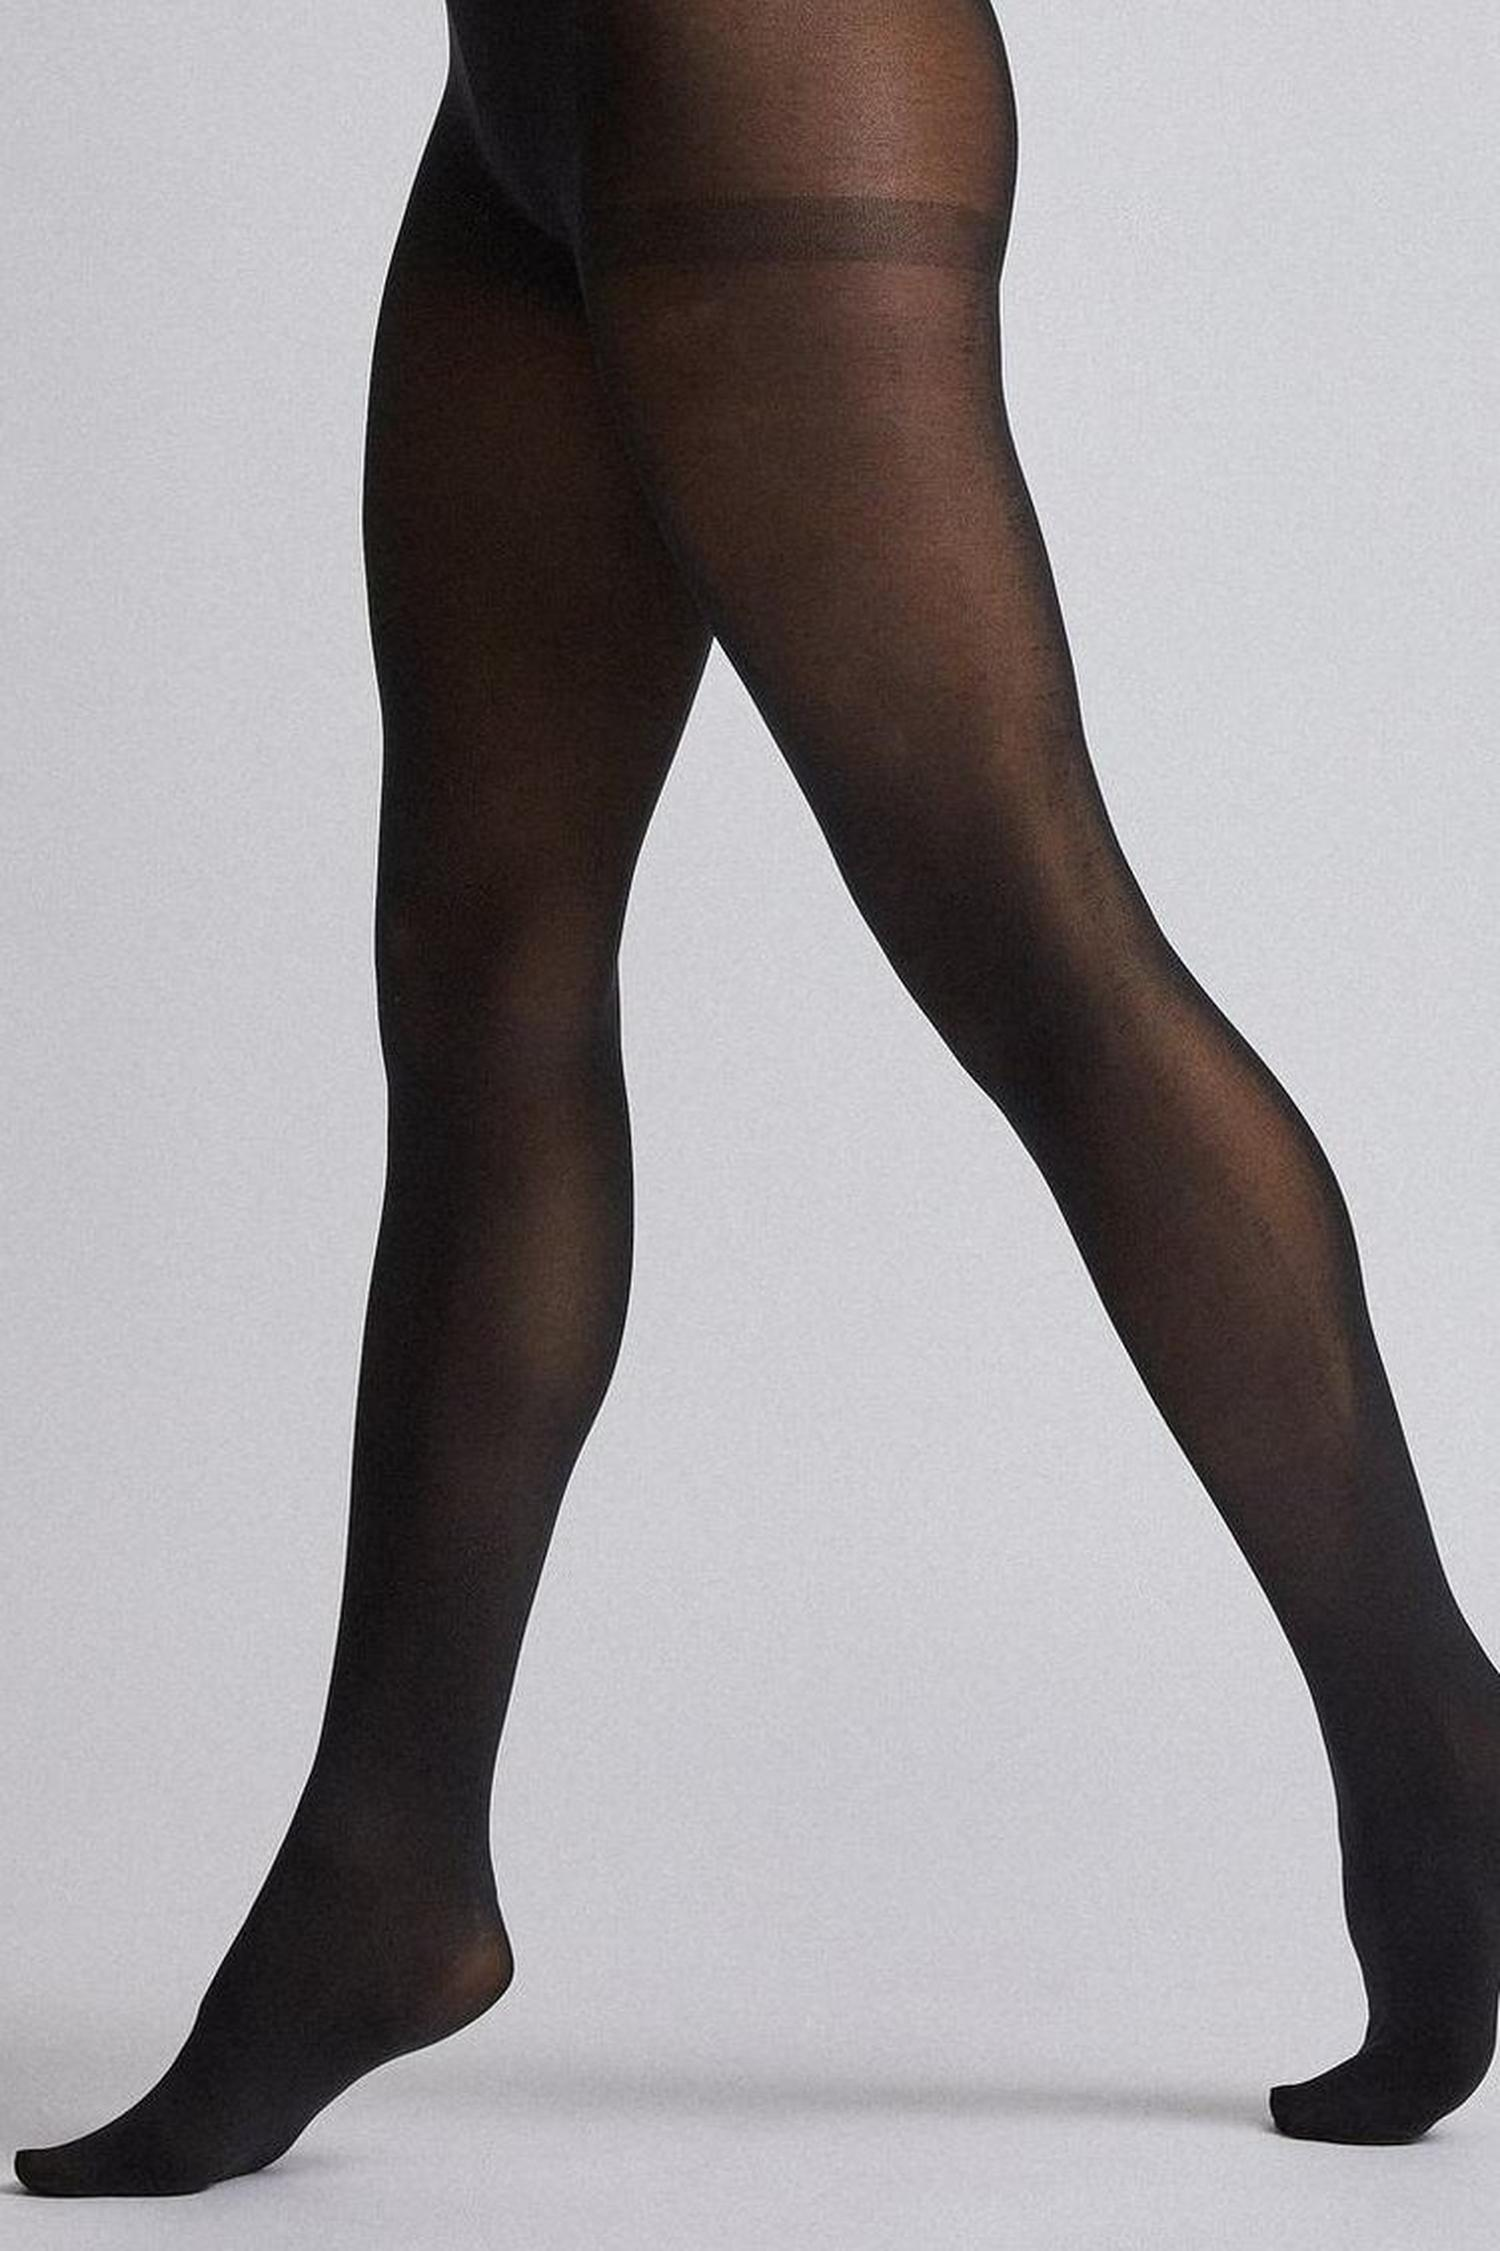 105 Black 40 Denier two Pack Tights image number 2